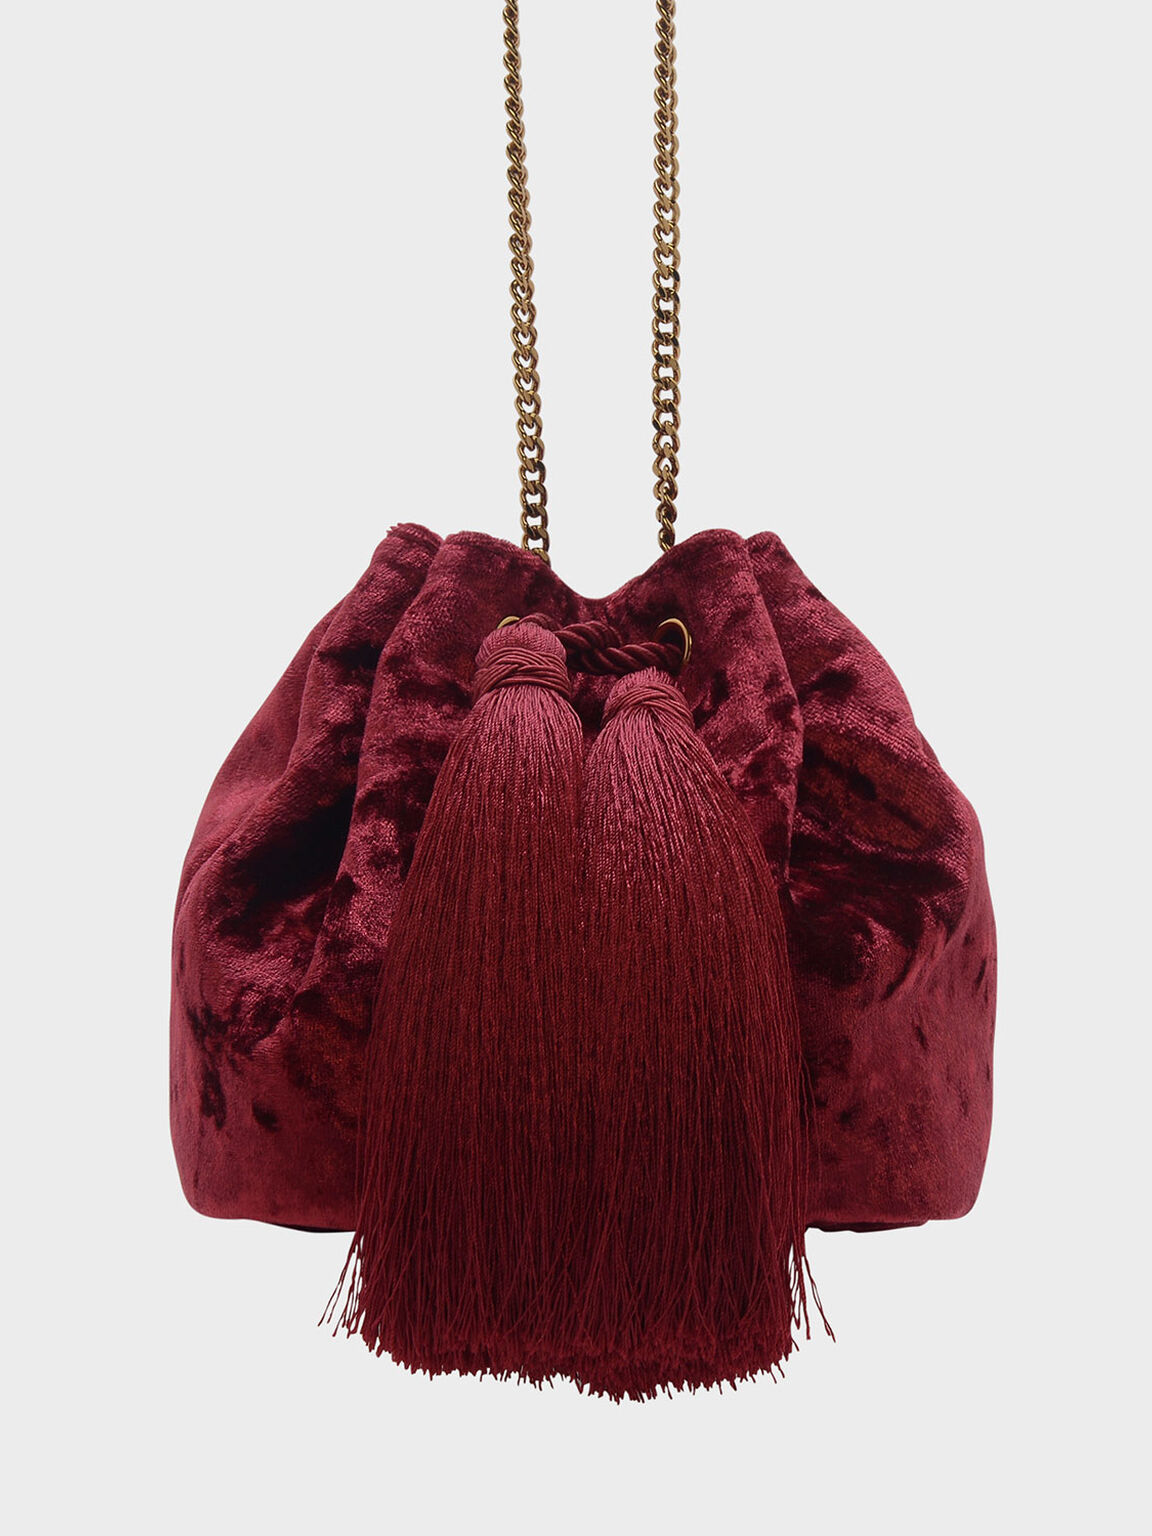 Tassel Drawstring Bag, Red, hi-res